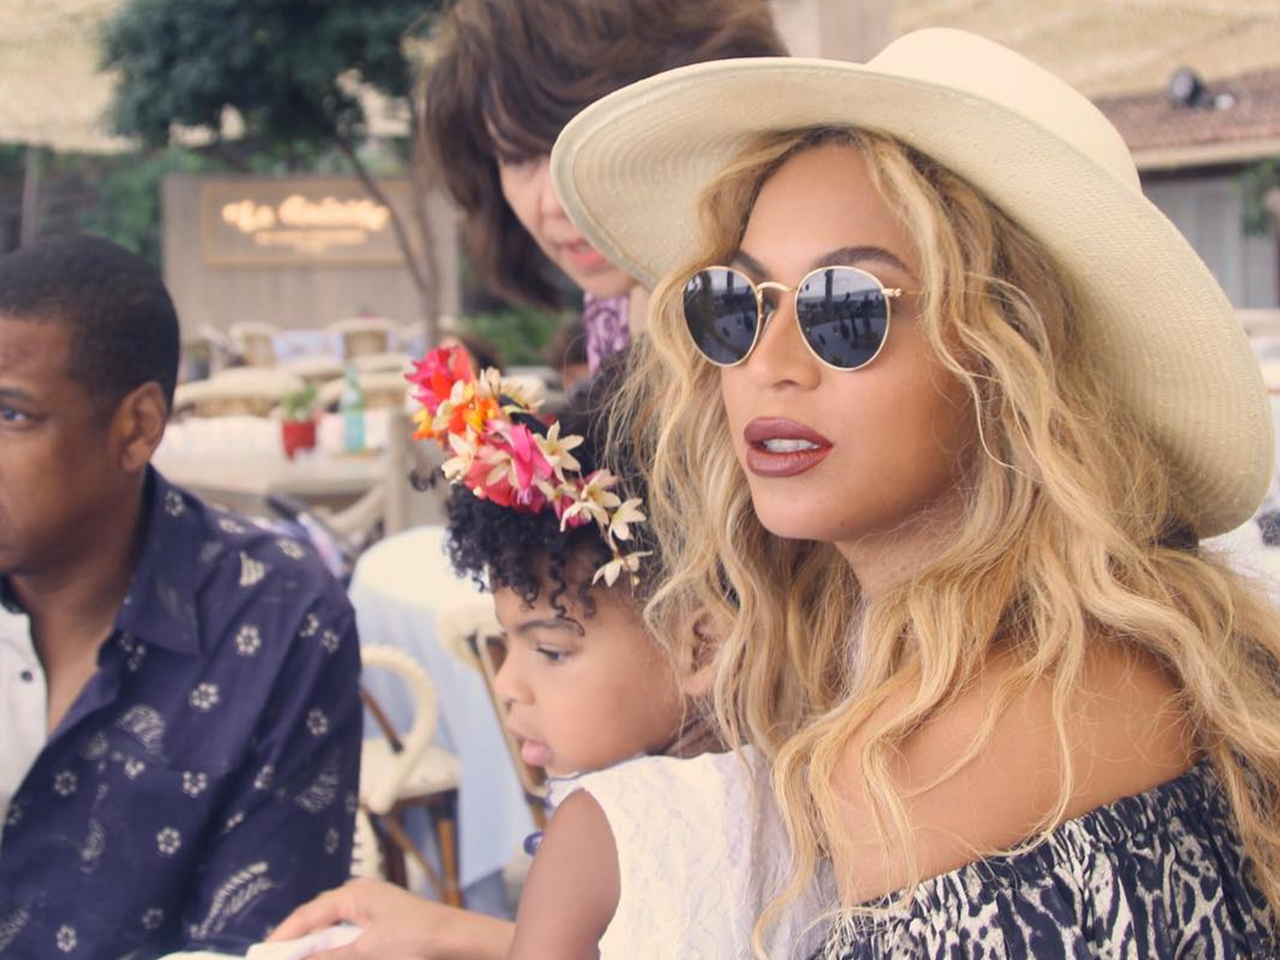 Beyonce sits outside with daughter Blue Ivy in her lap.